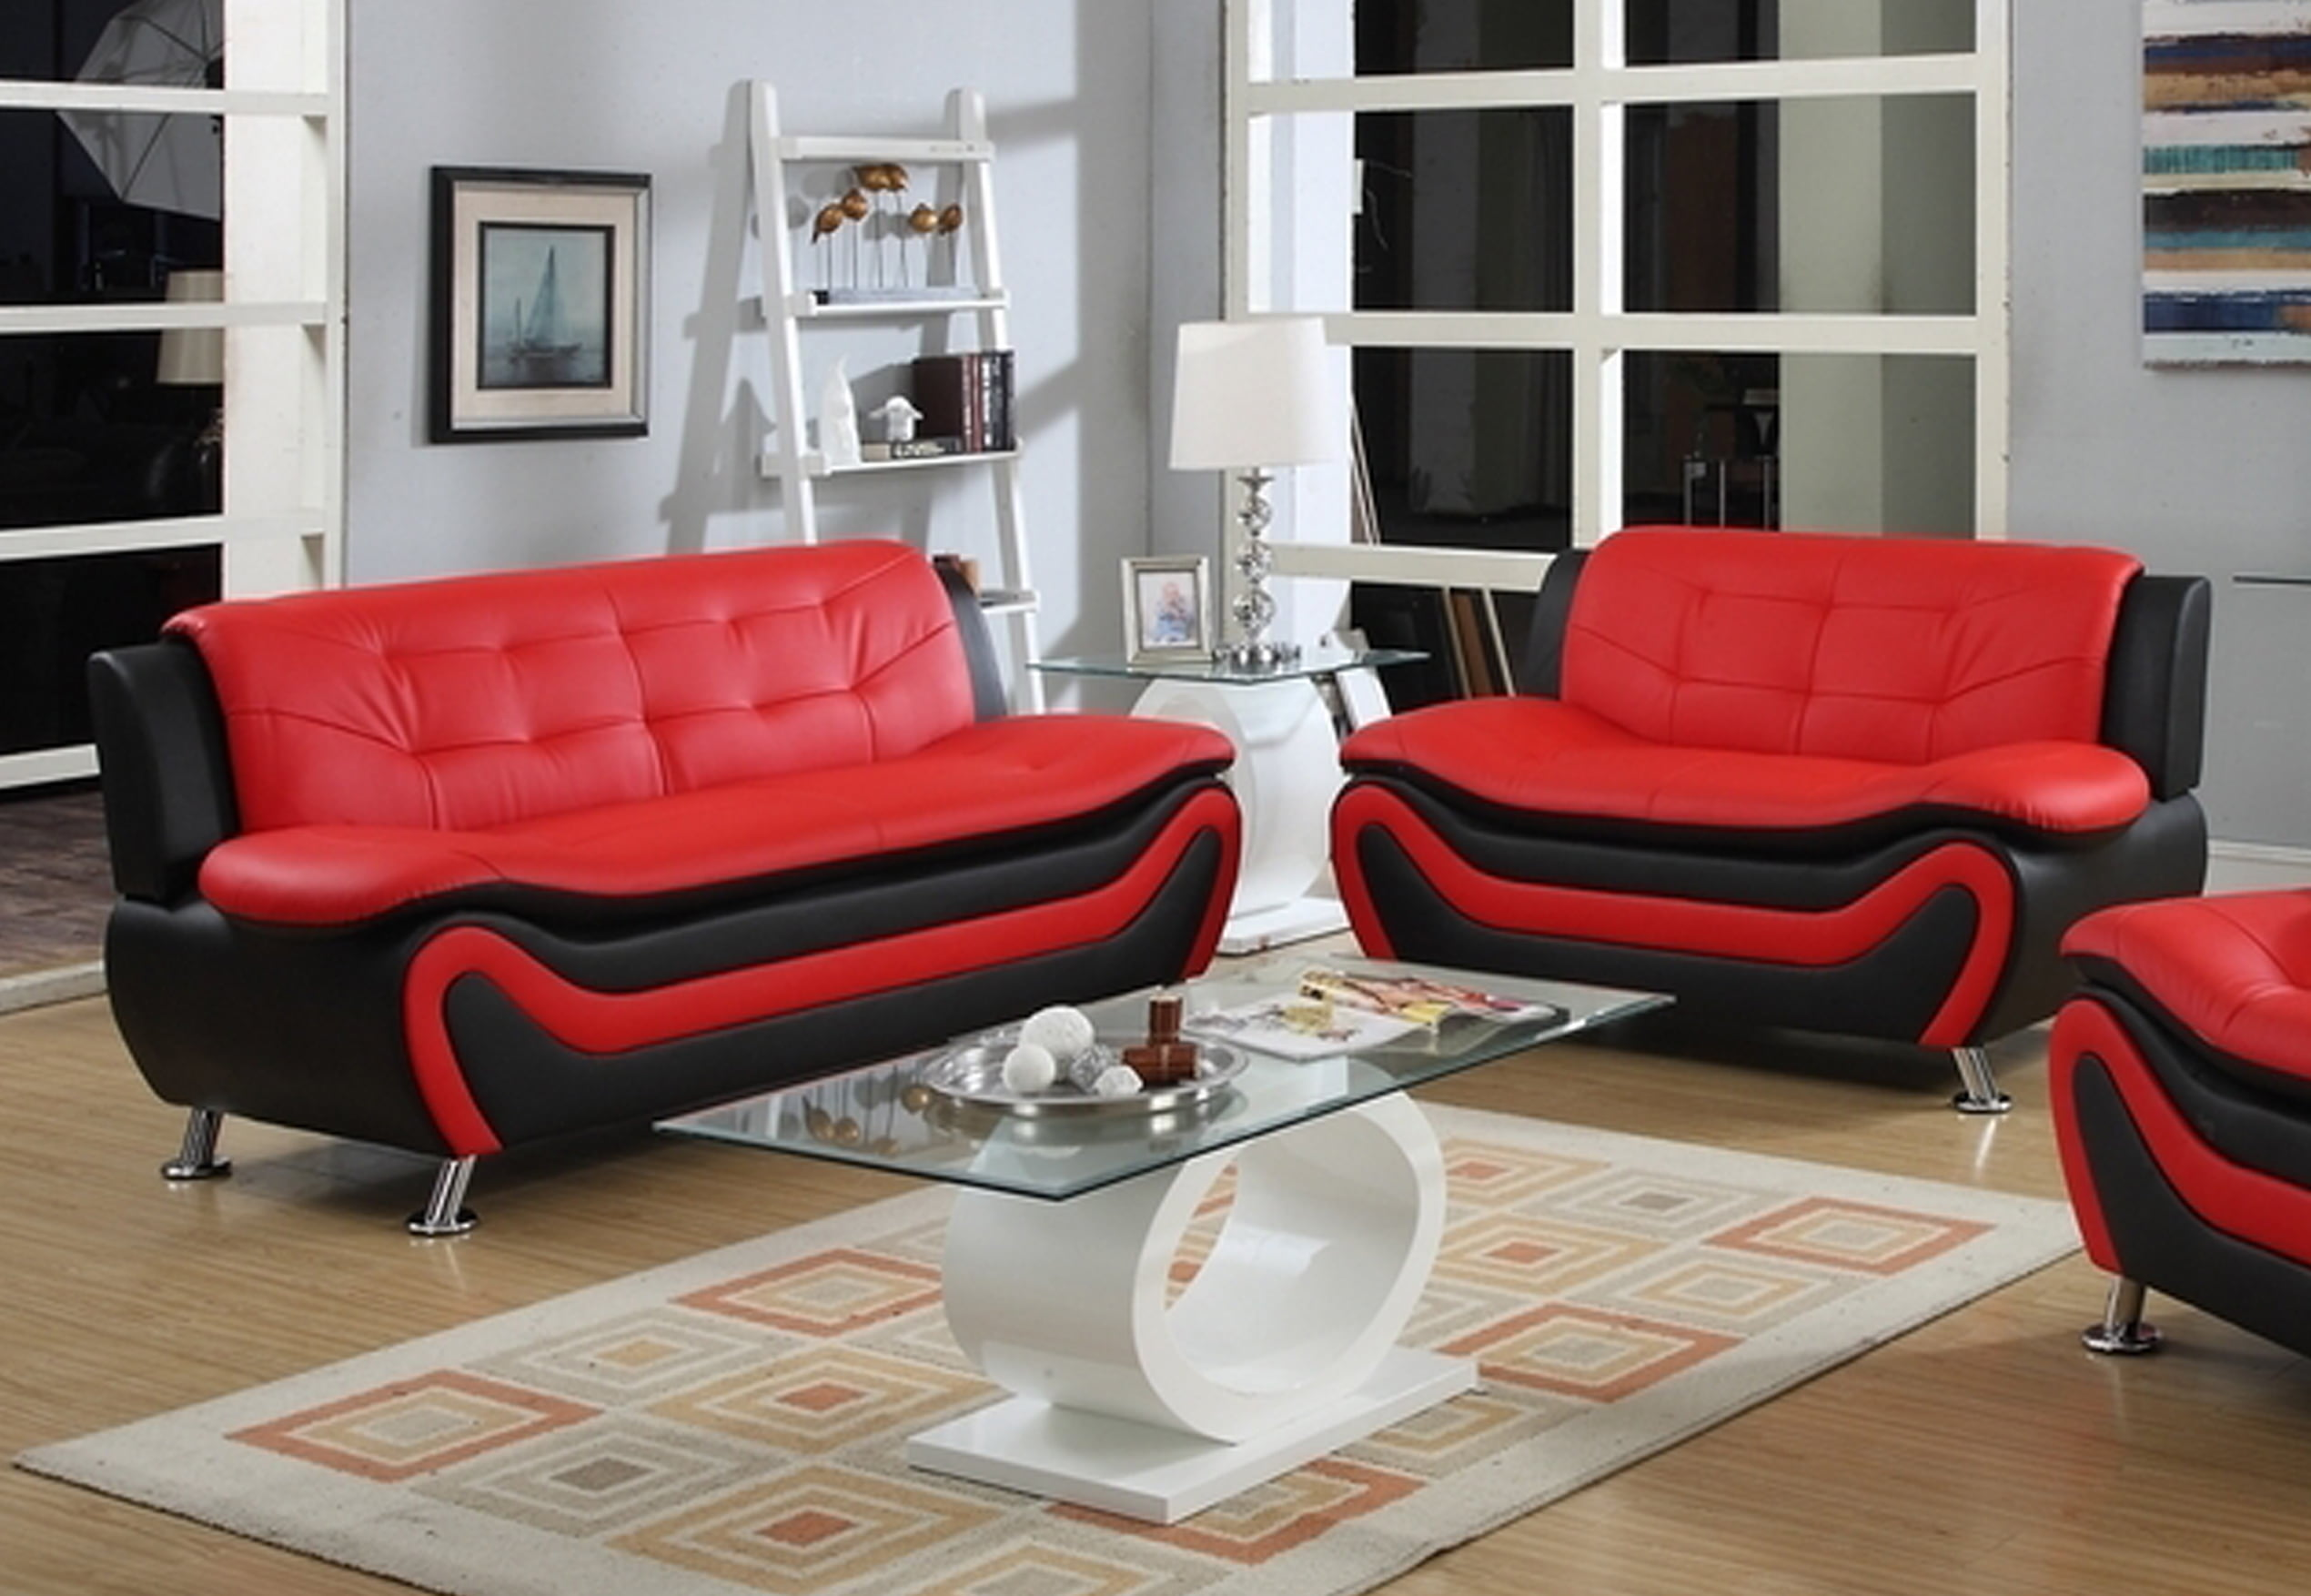 Frady 2 pc Black and Red Faux Leather Modern Living Room Sofa and ...